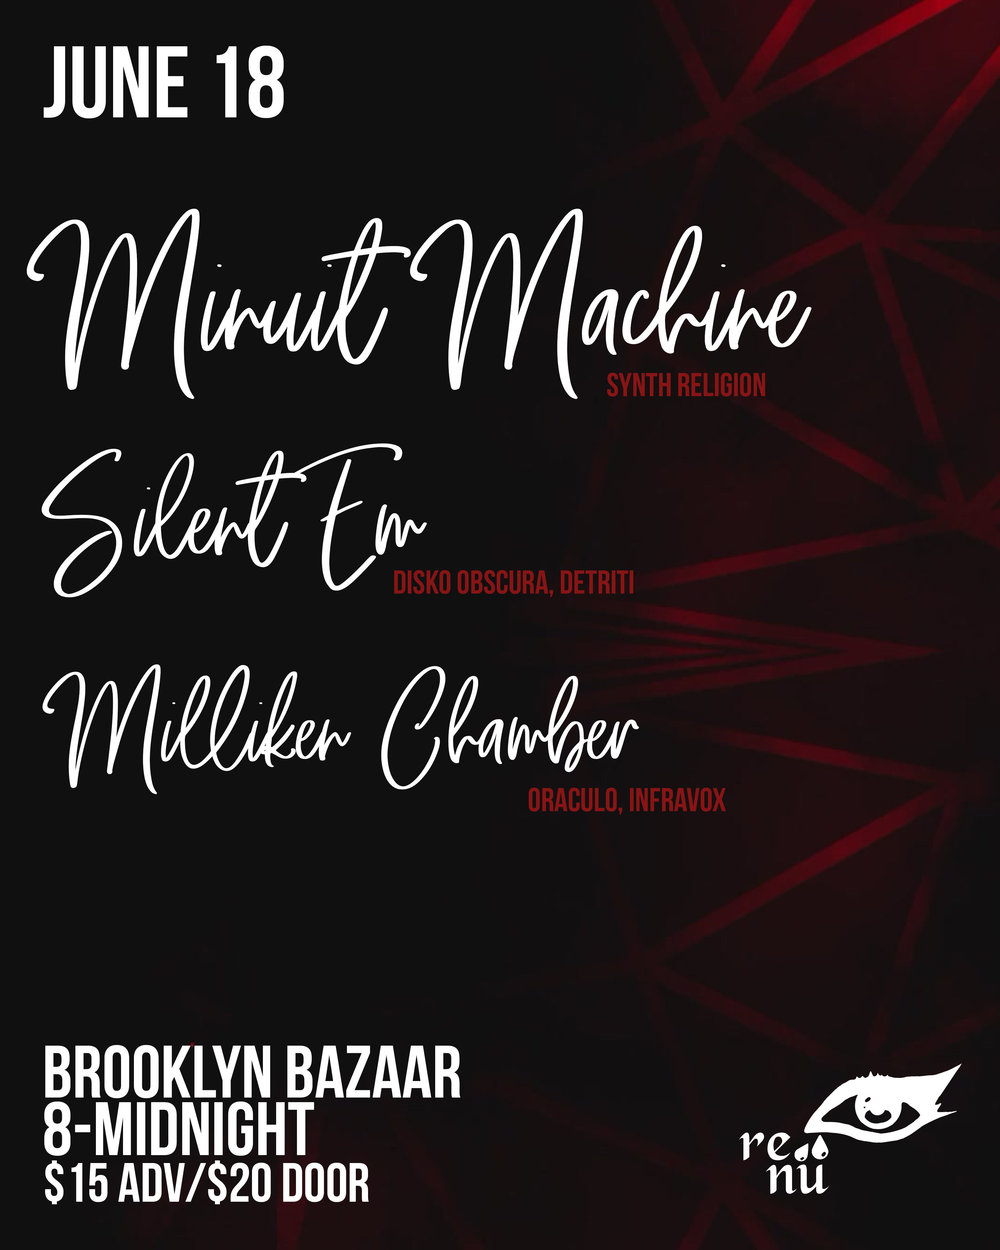 Flyer for Minuit Machine, Silent Em, Milliken Chamber at Brooklyn Bazaar on June 18th. Event hosted by Re:Nu.